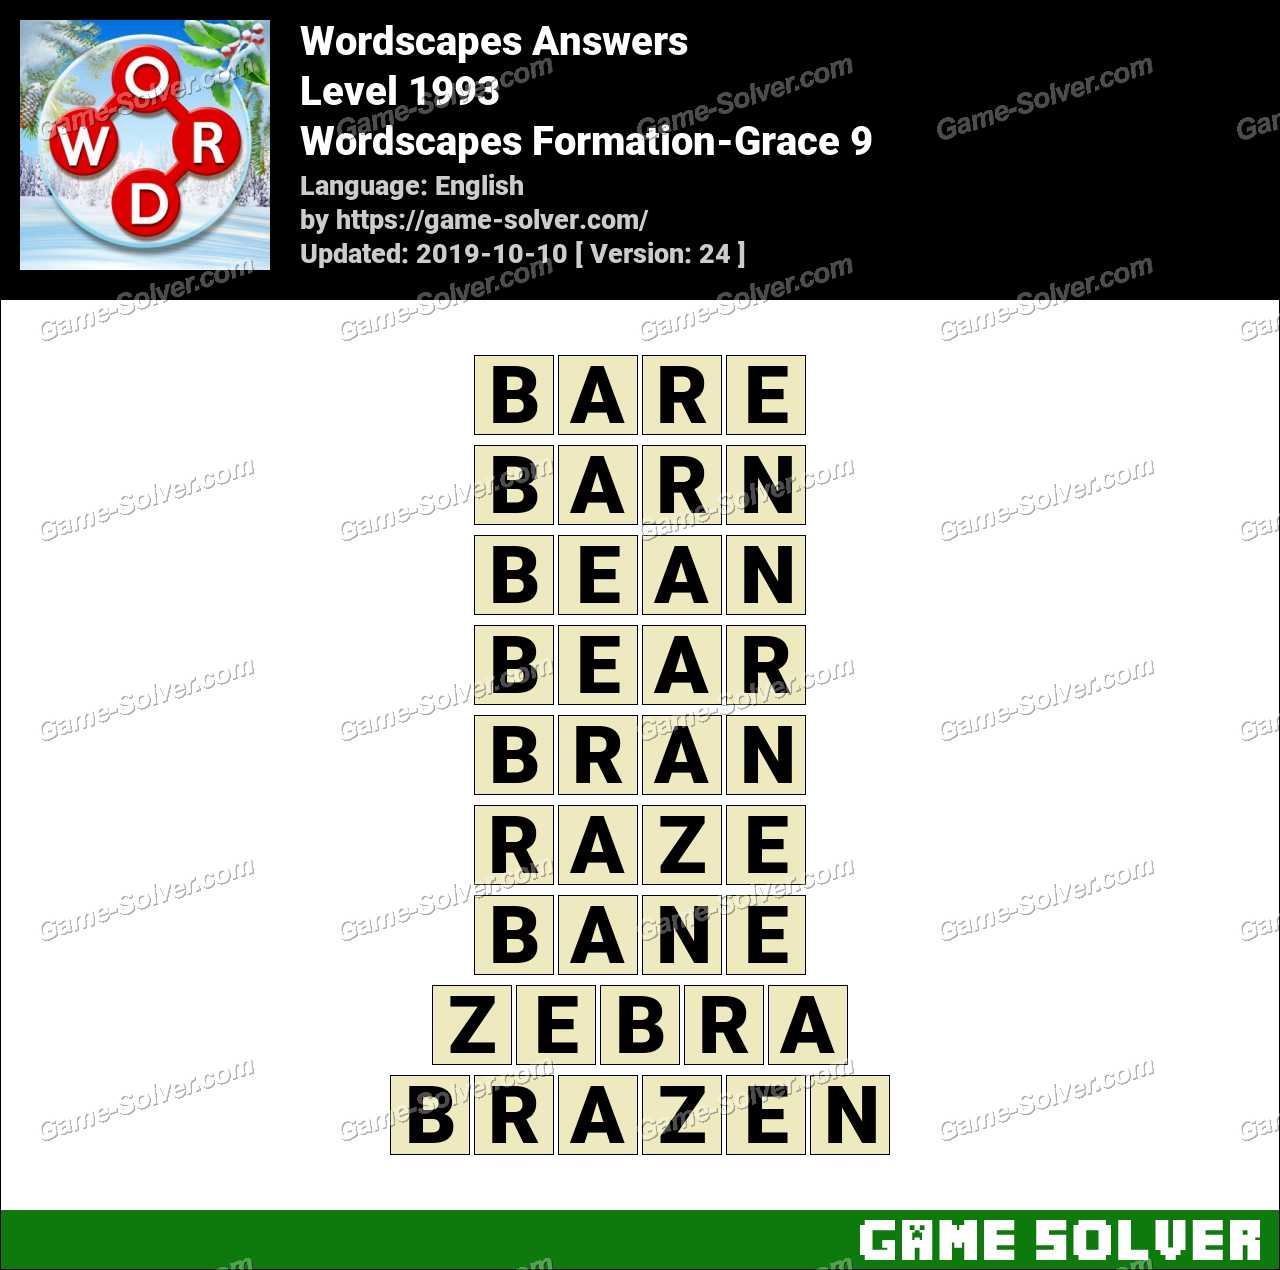 Wordscapes Formation-Grace 9 Answers